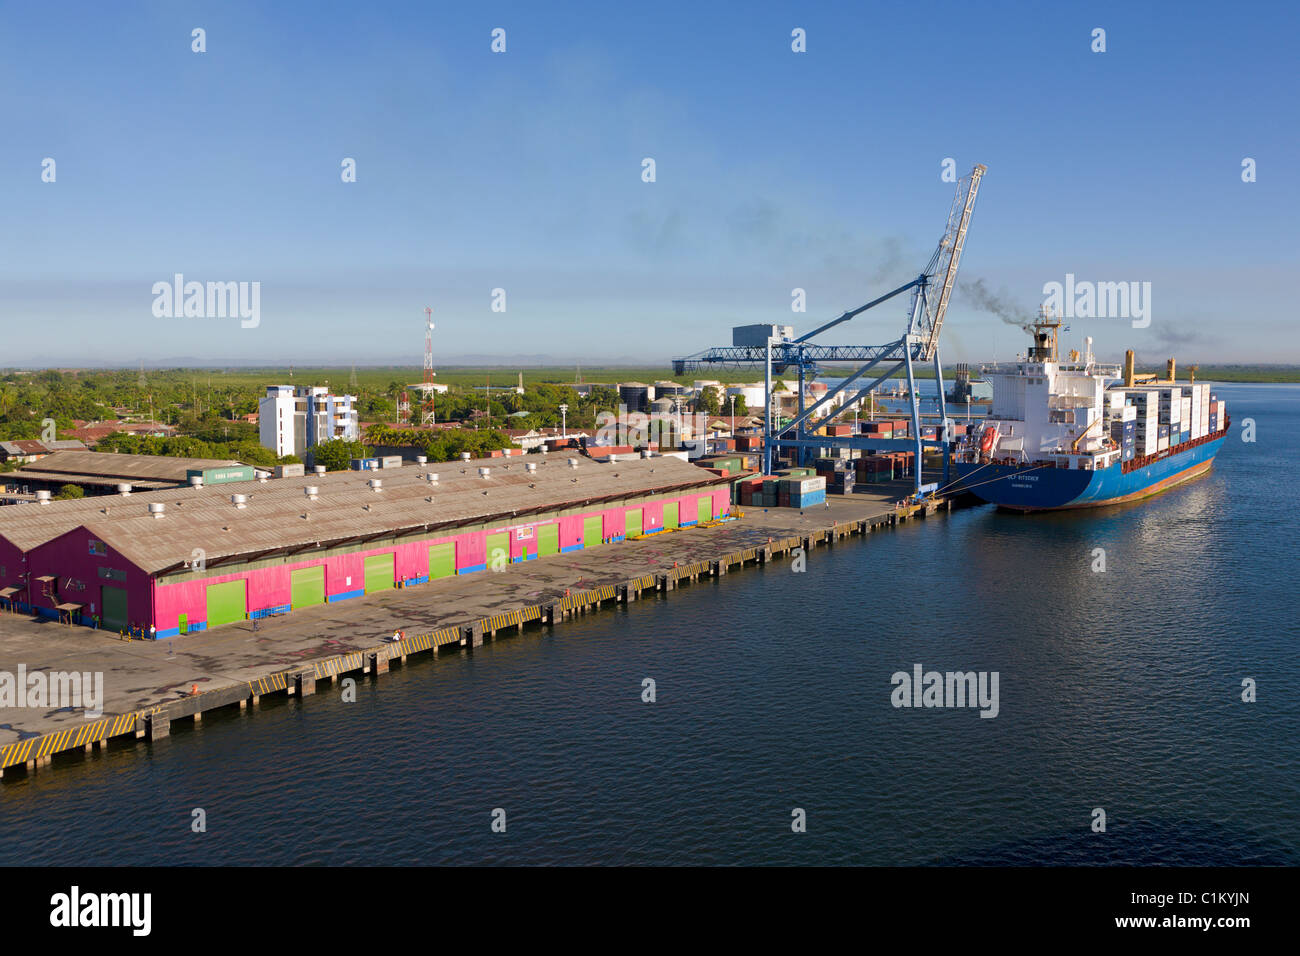 Container ship, Port of Corinto, Nicaragua - Stock Image